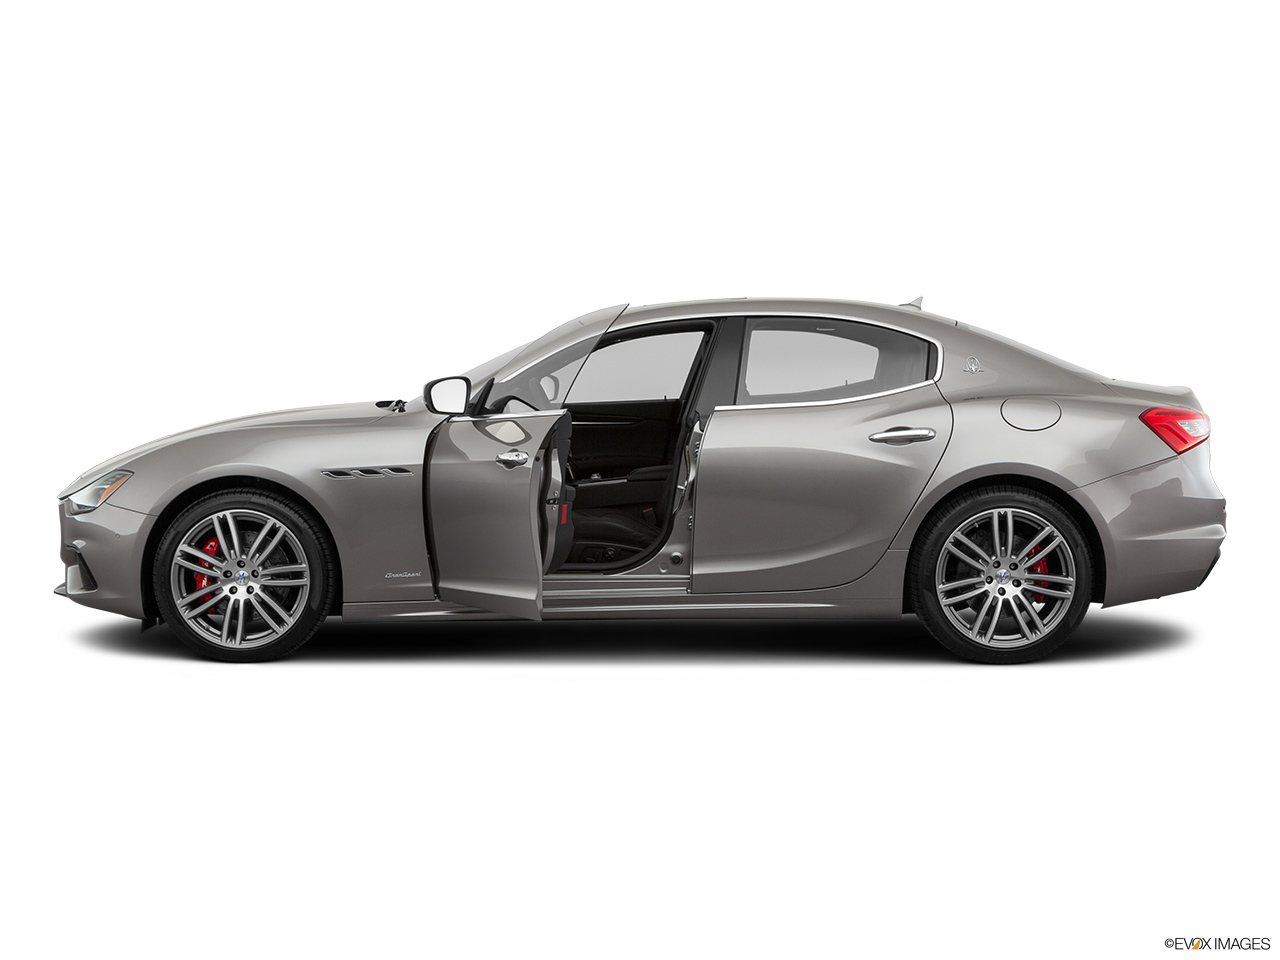 2020 Maserati Ghibli S Gransport Driver's side profile with drivers side door open.